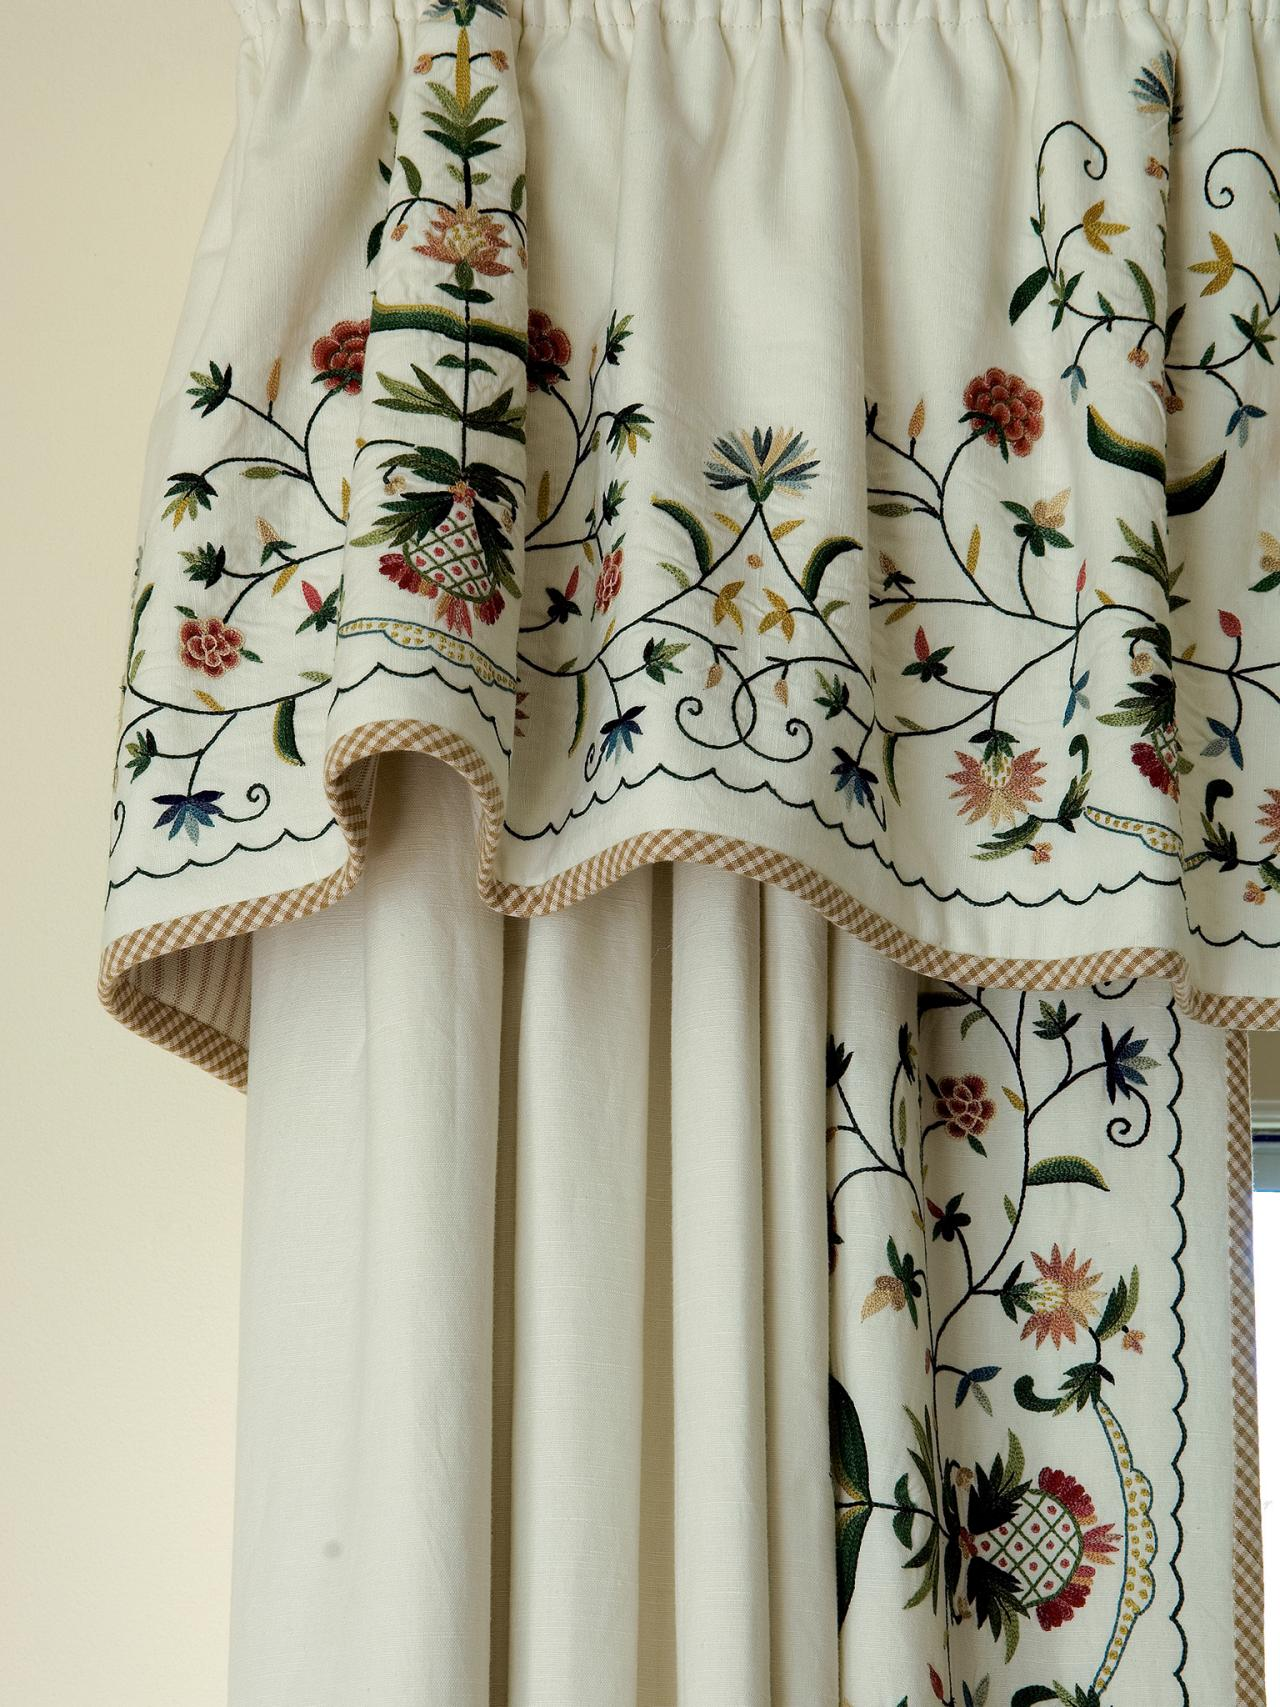 Better Homes and Gardens Embroidered Sheer Curtain Panel | Chartreuse Velvet Curtains | Embroidered Curtains